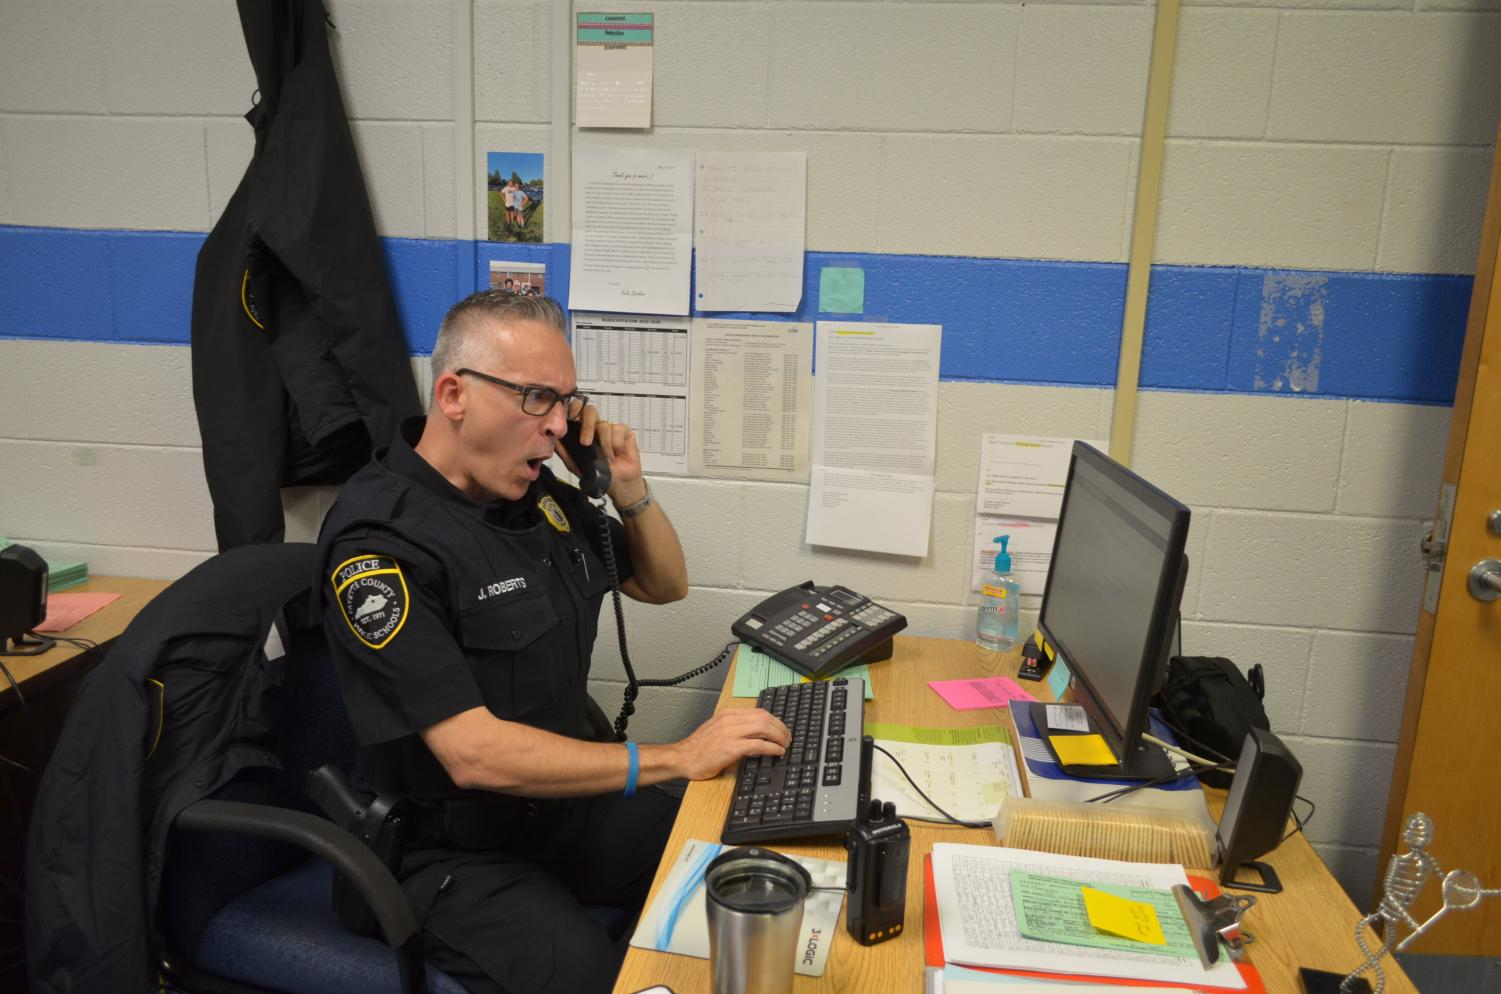 Officer Roberts working in his Office